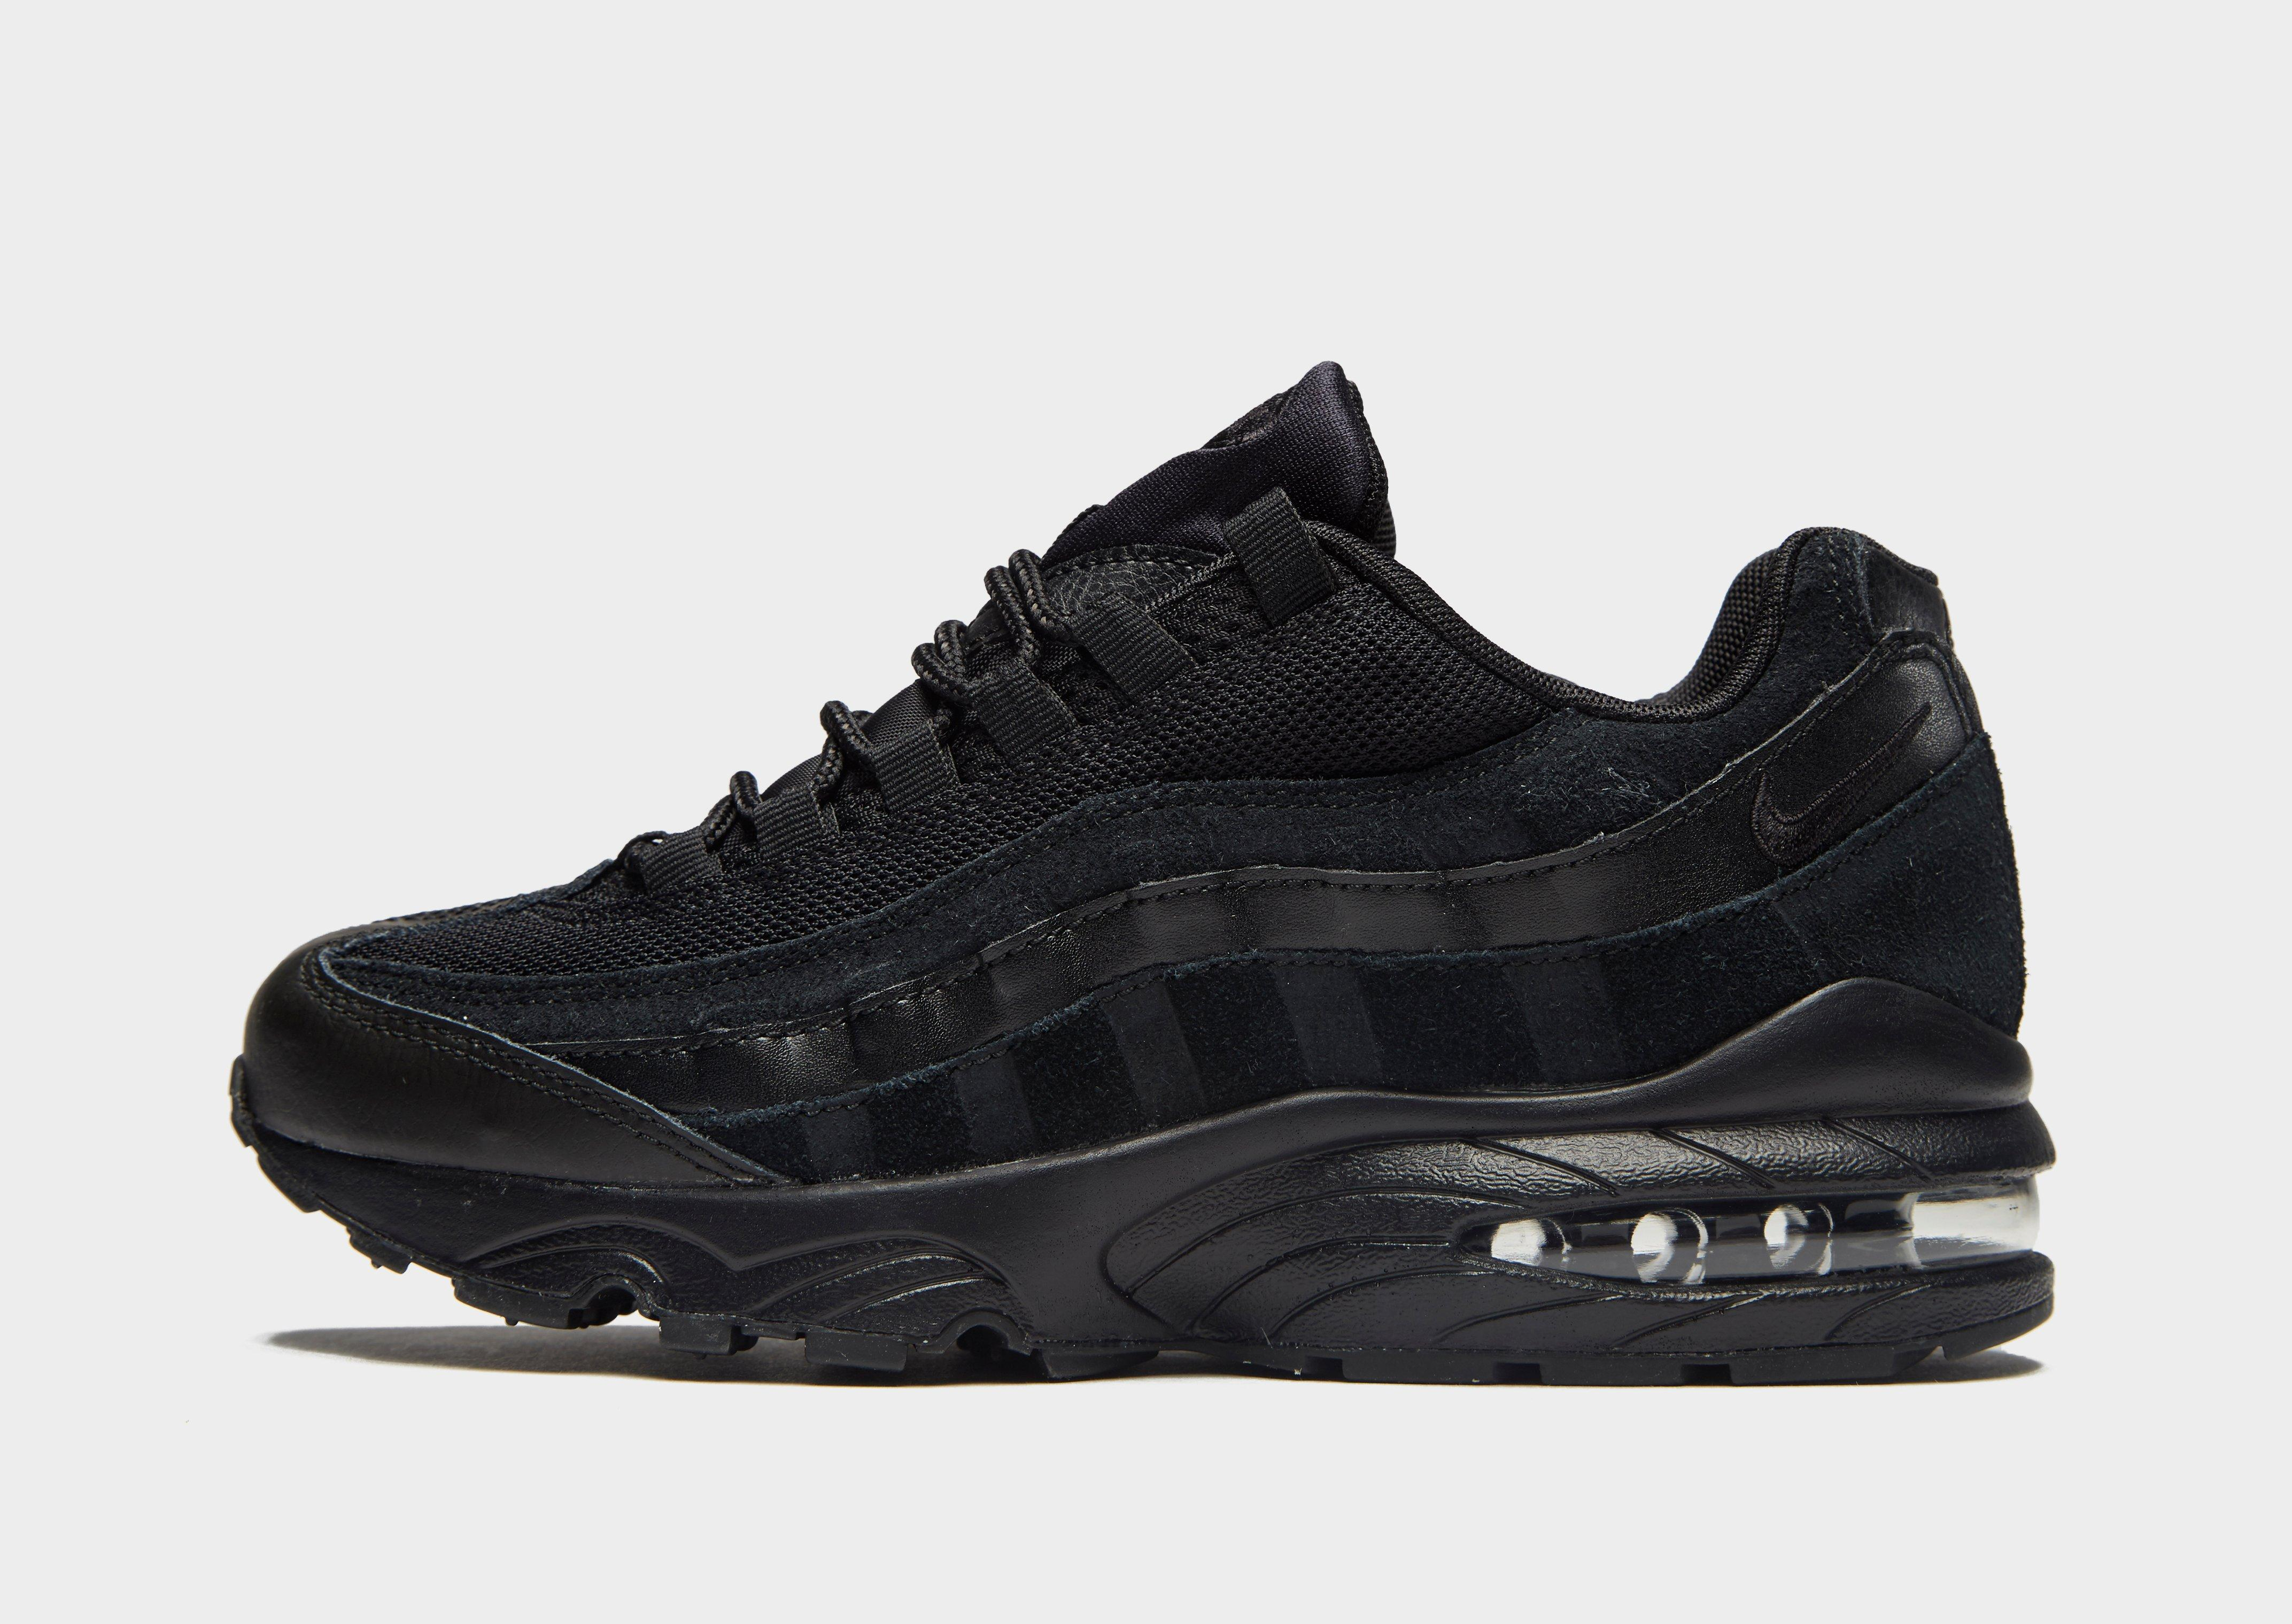 best website dfe5c 35129 Nike Air Max 95 Homme Confortable Pas Cher En Ligne Nike Air Max 95  Essential Homme - Only at JD - 100% garantie Prix Air Max 90 HYP PRM Camo  Noir ...